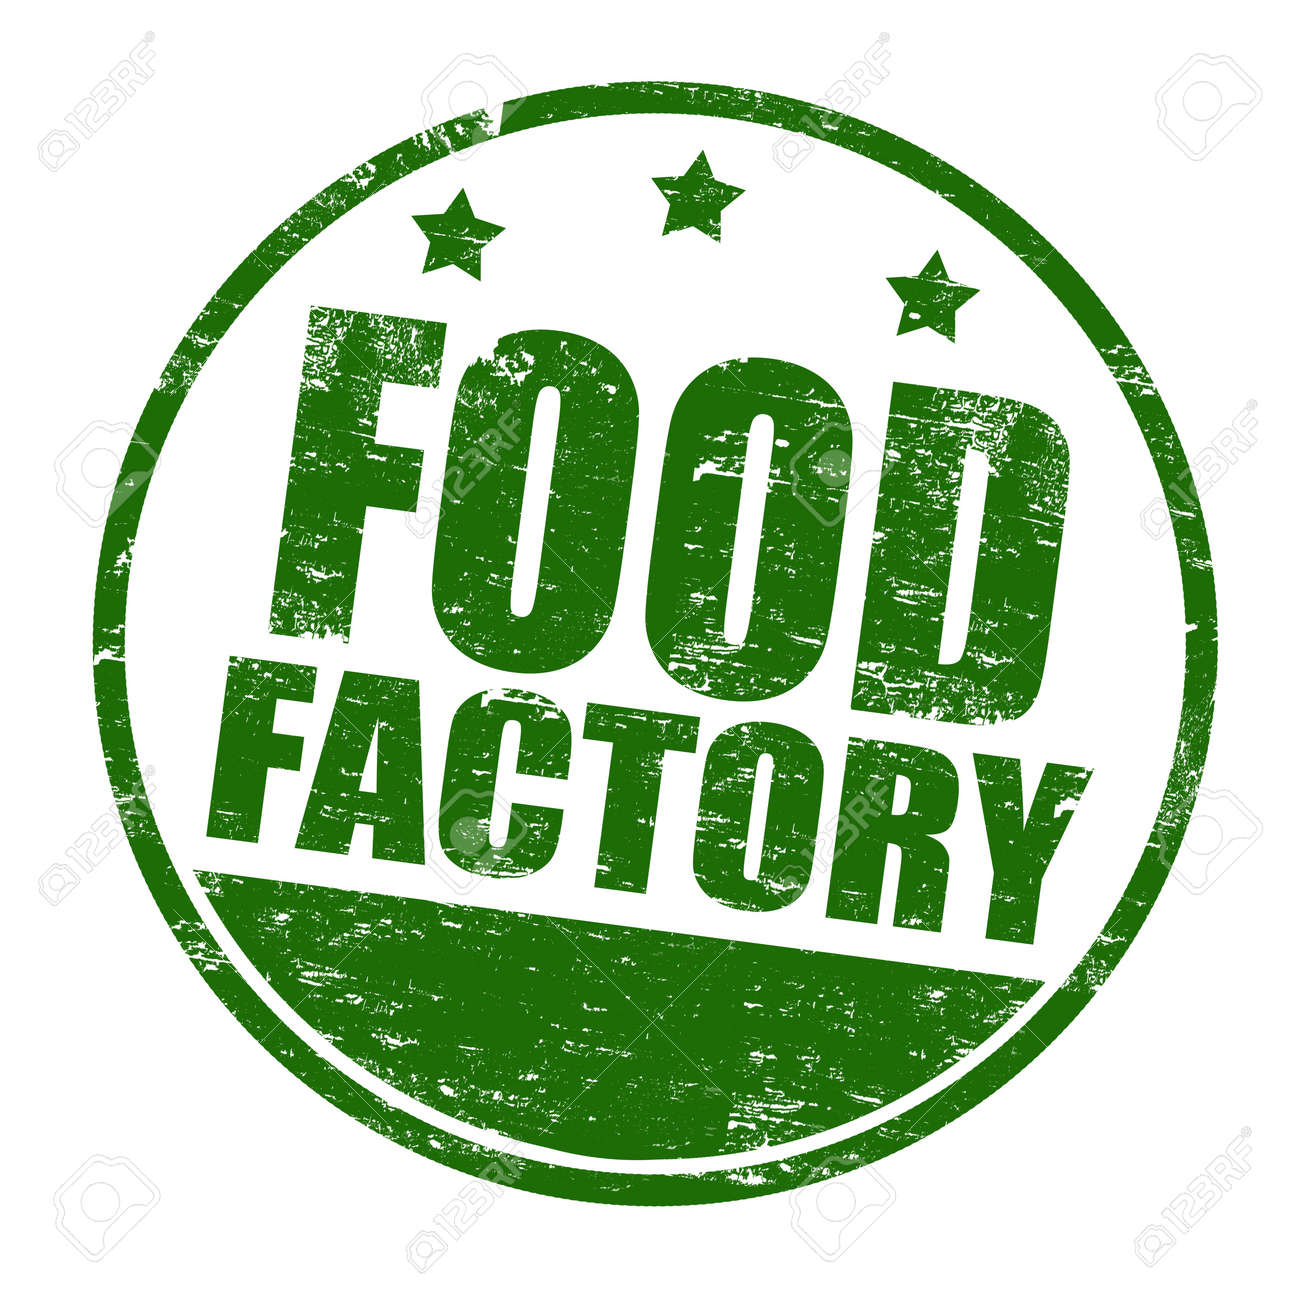 Food factory grunge rubber stamp, vector illustration Stock Vector - 18504360